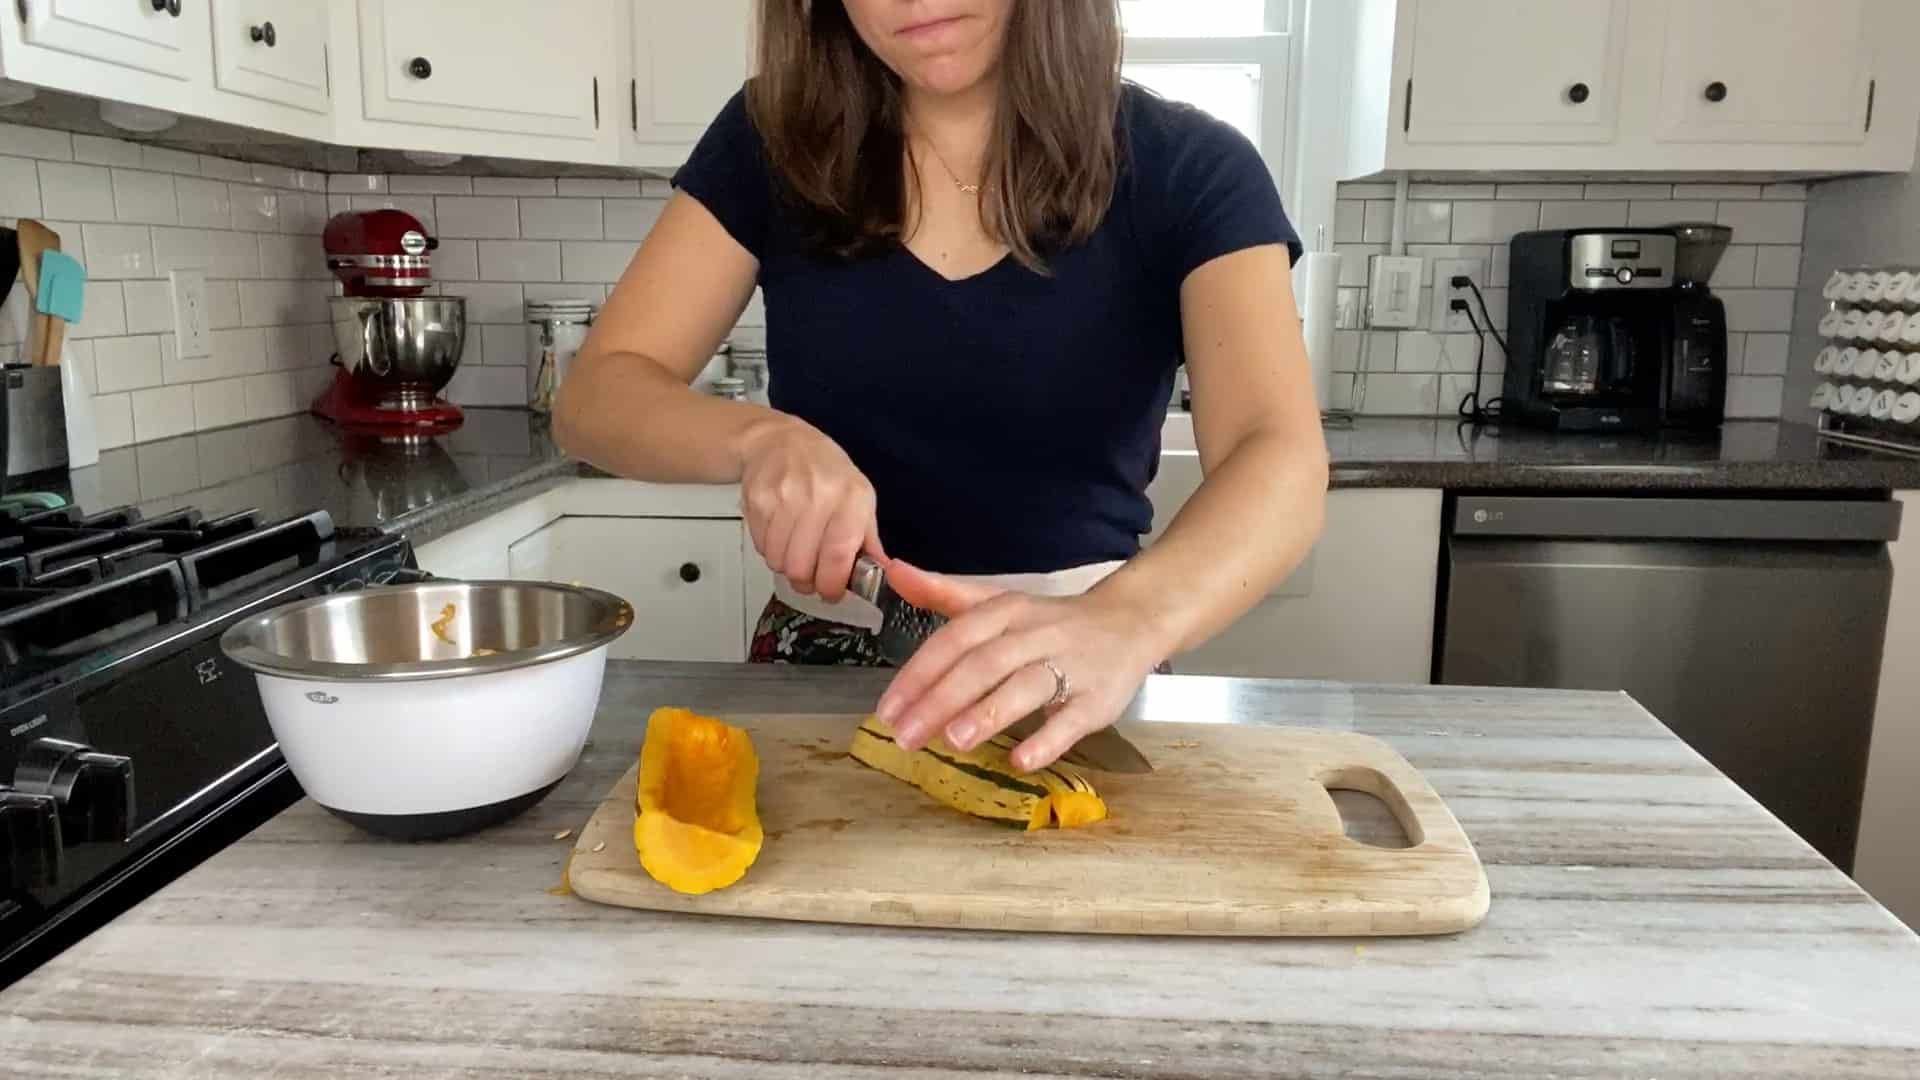 woman cutting delicata squash into pieces on a cutting board